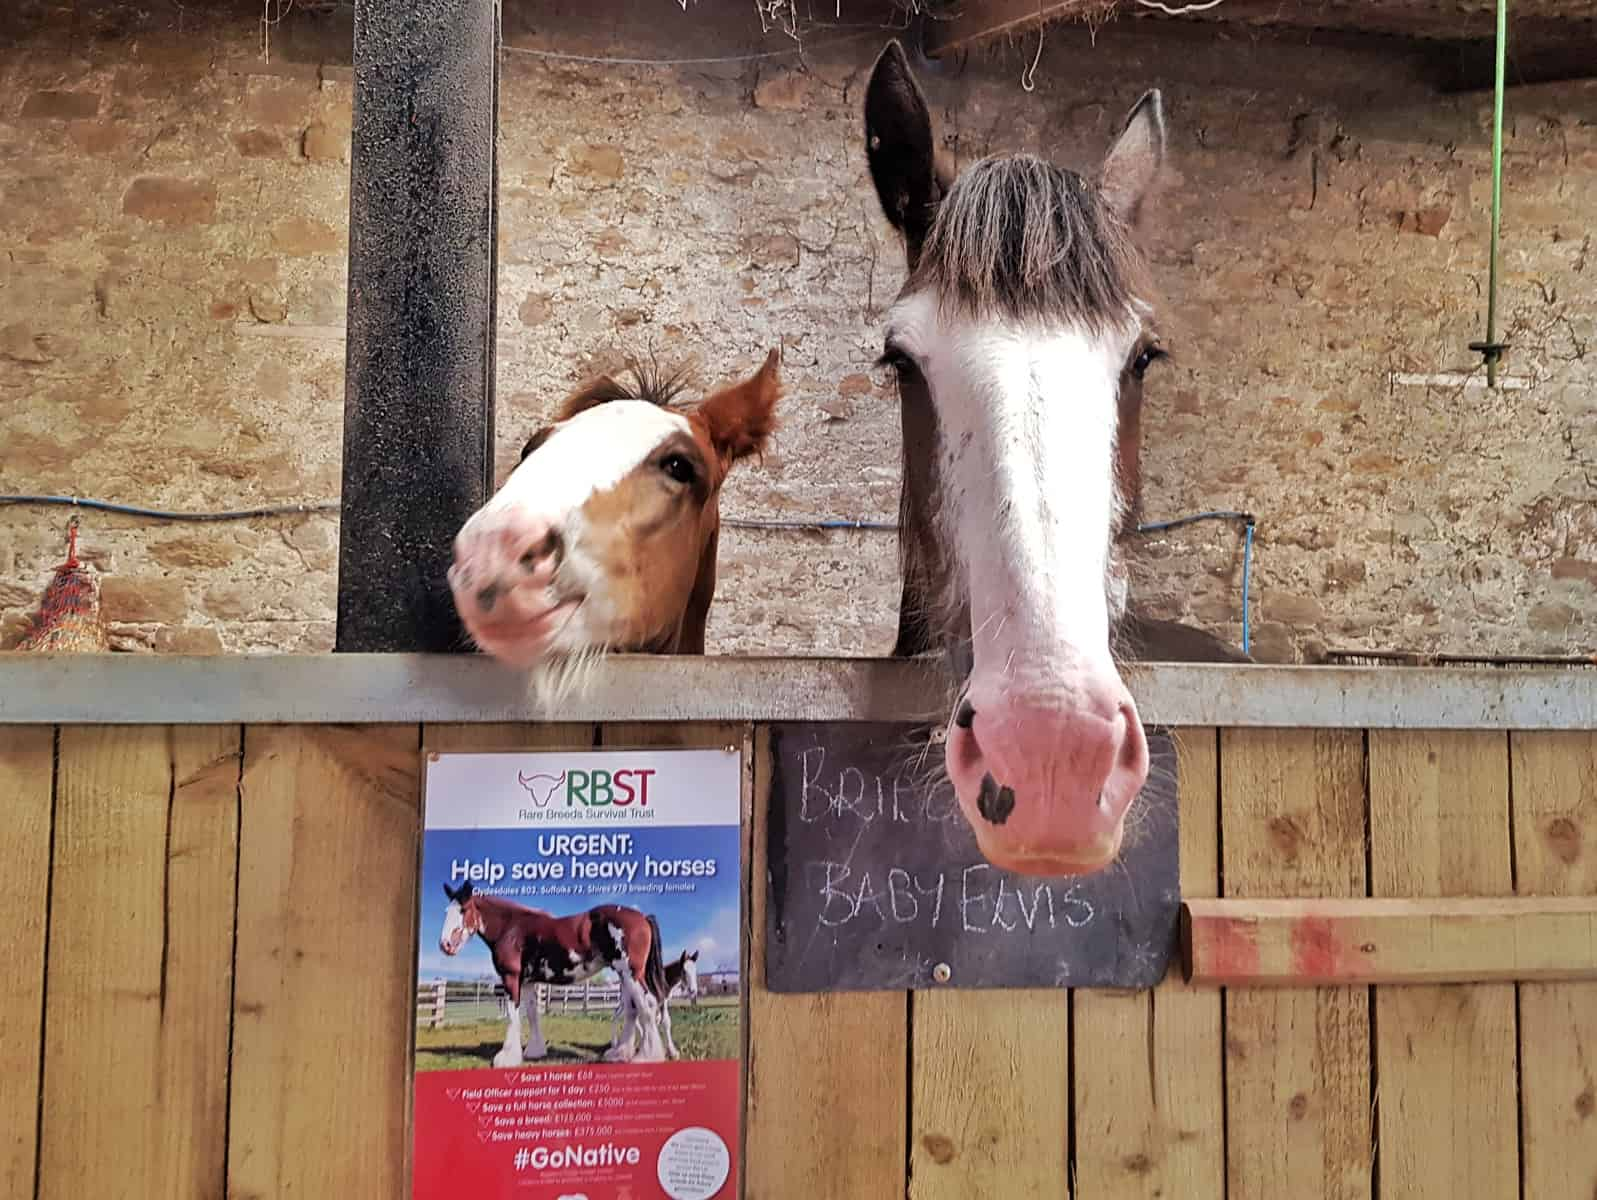 Ford and Etal Hay Farm horse and foal